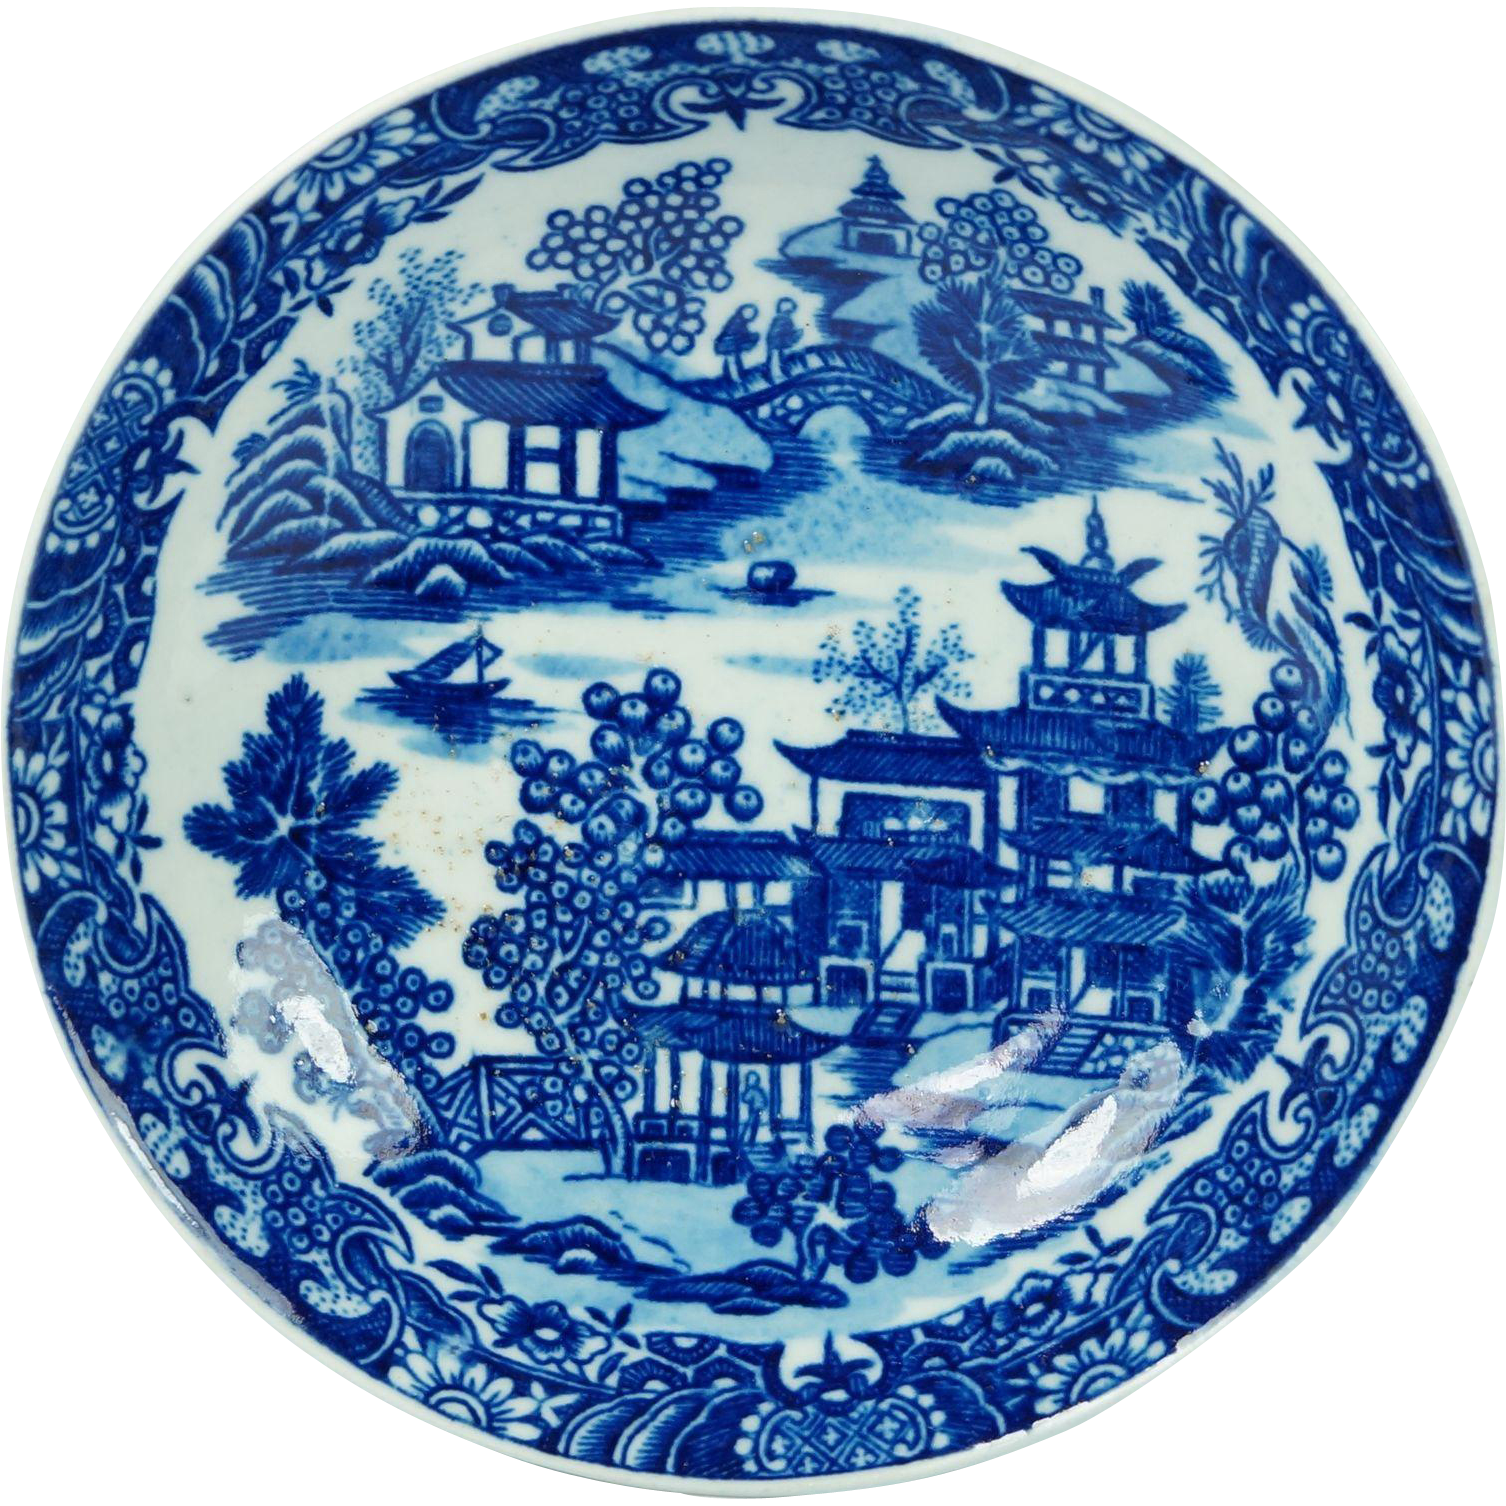 18th Century Worcester Porcelain Plate Blue and White Bandstand Pattern English Circa 1780